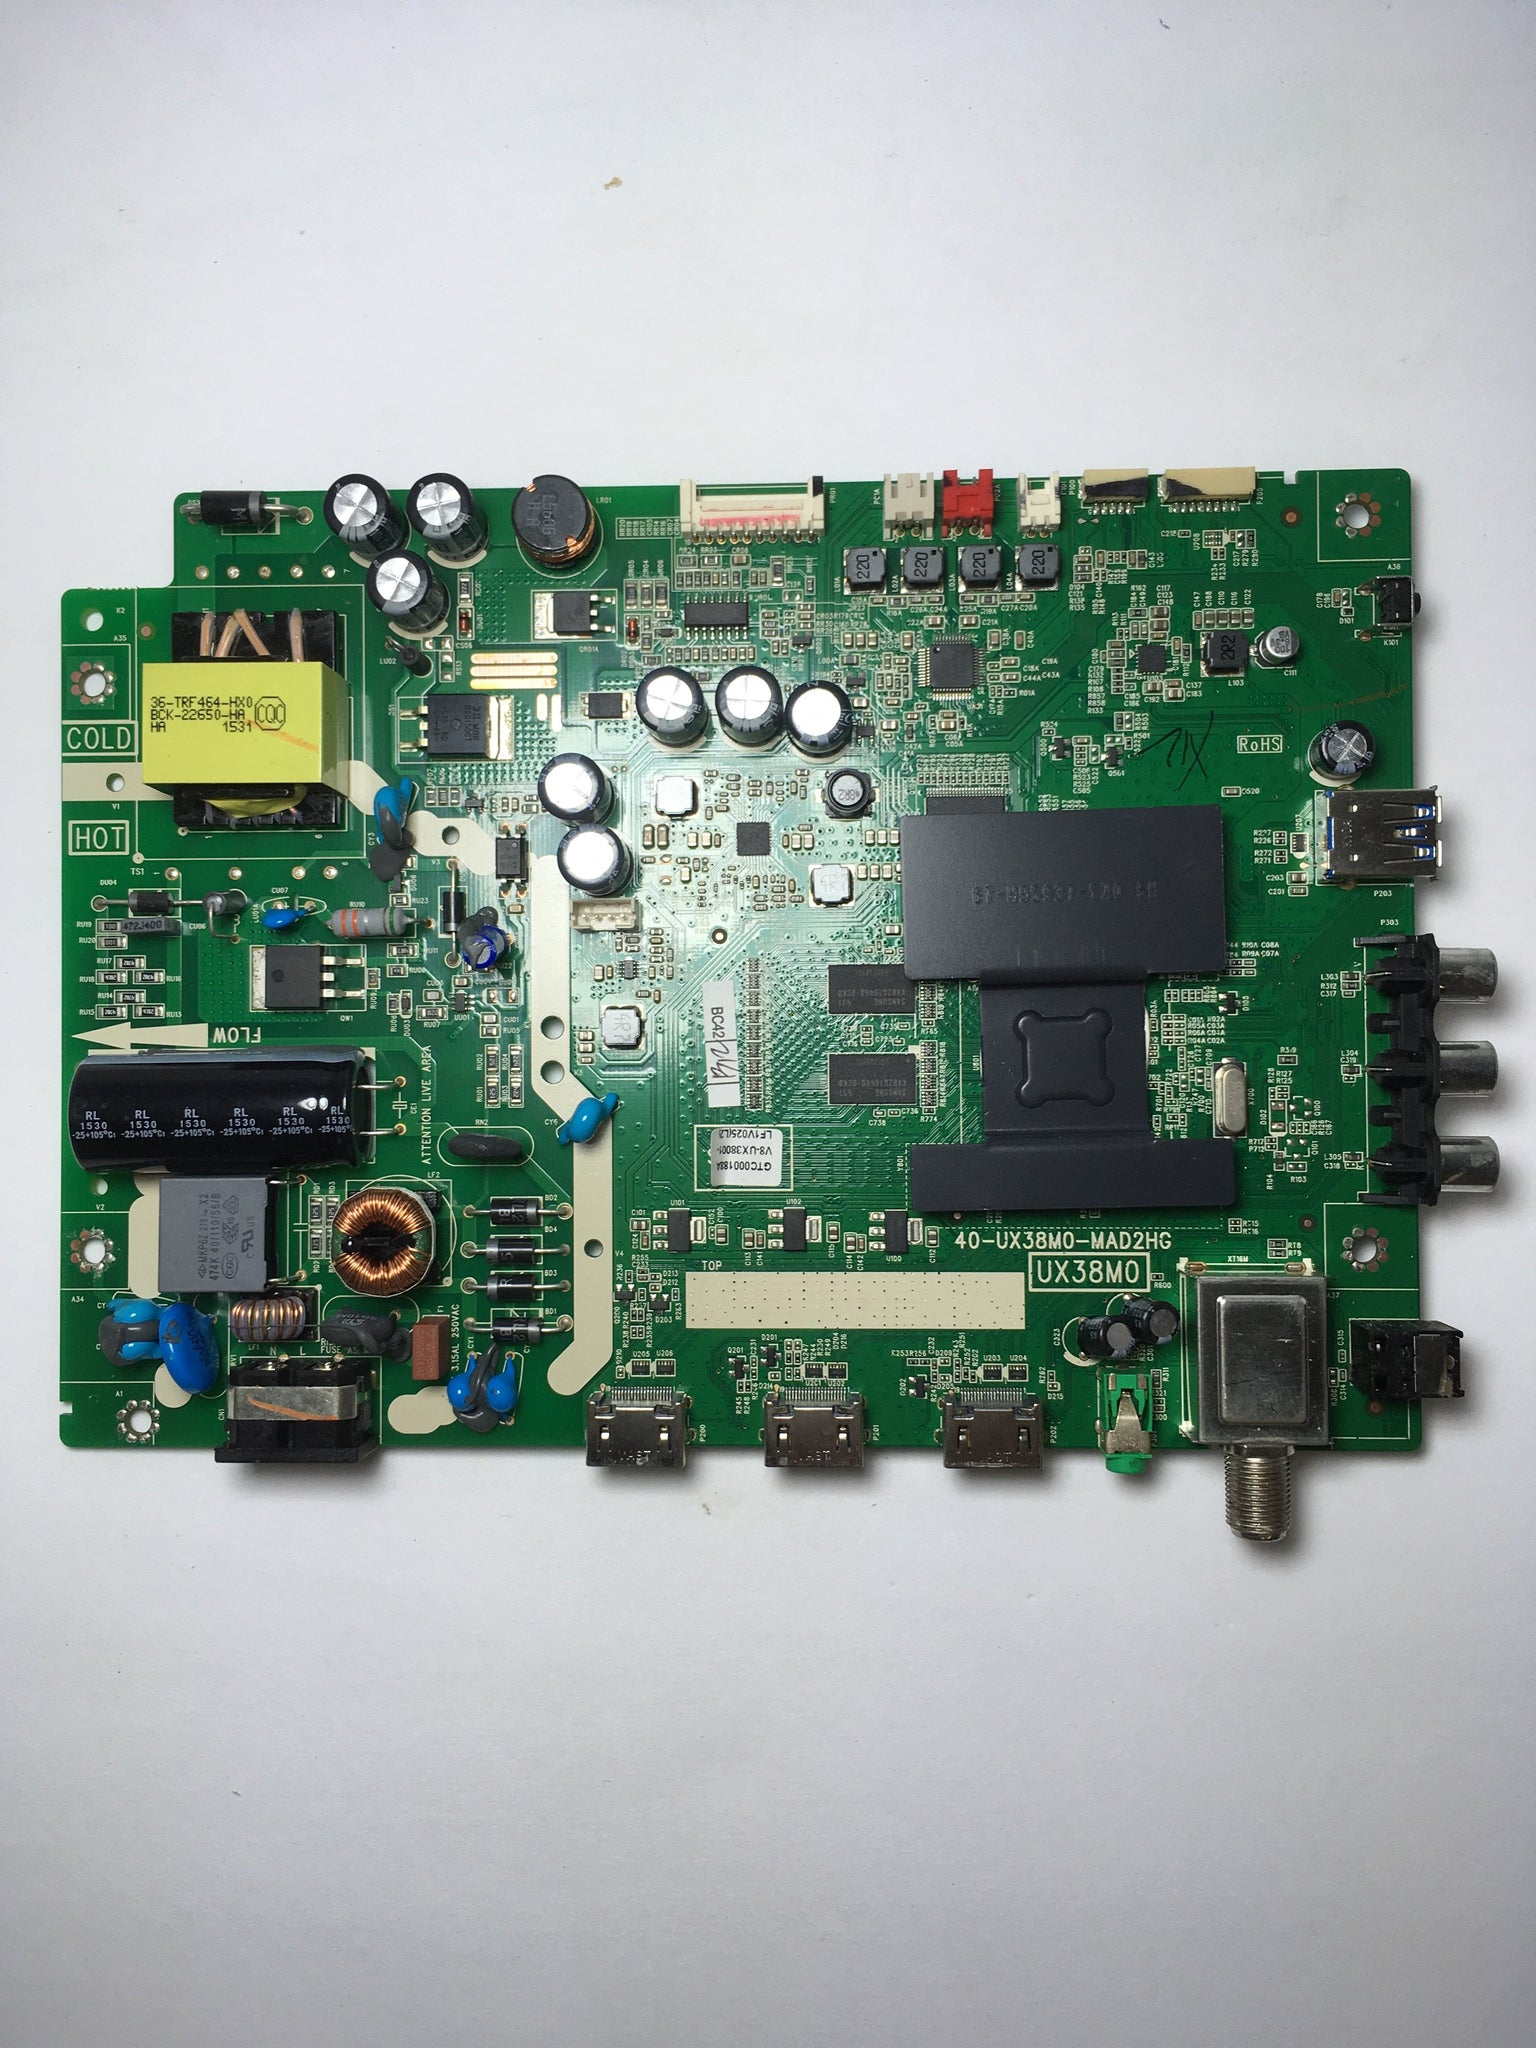 TCL V8-UX38001-LF1V025 Main Board / Power Supply for 32S3750 Version 32S3750TRAA